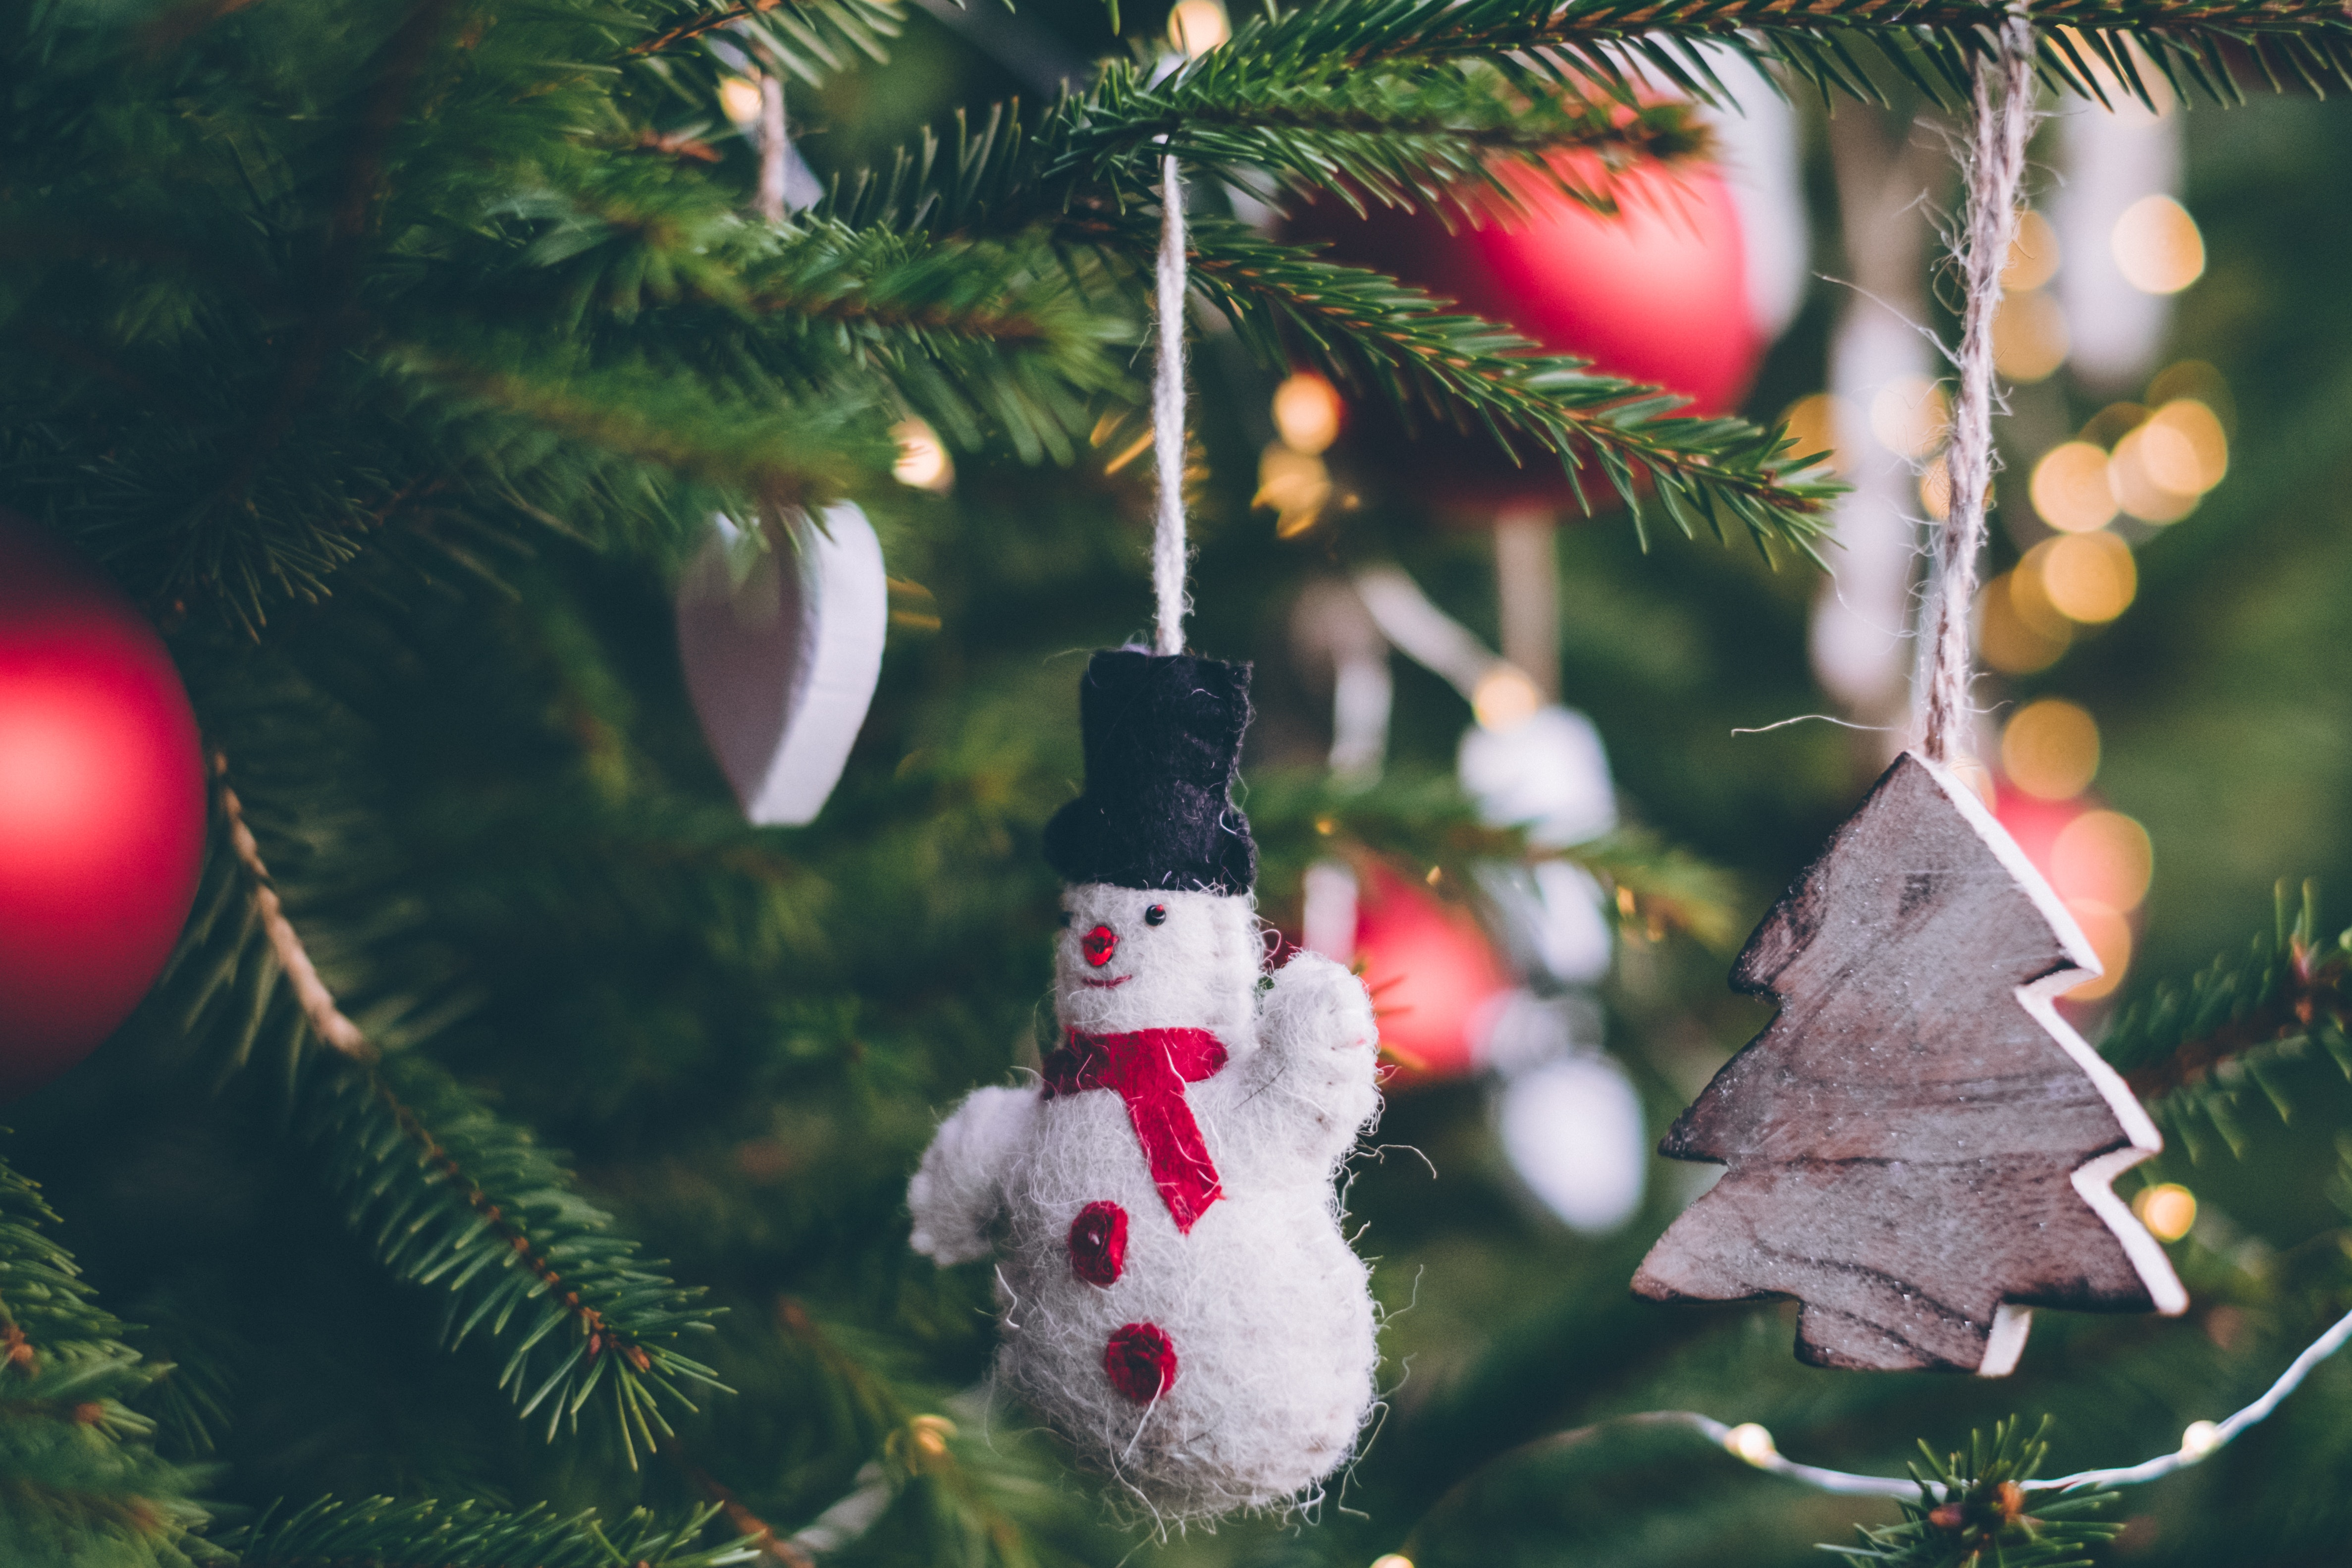 Snowman hanging from a tree with red ornaments